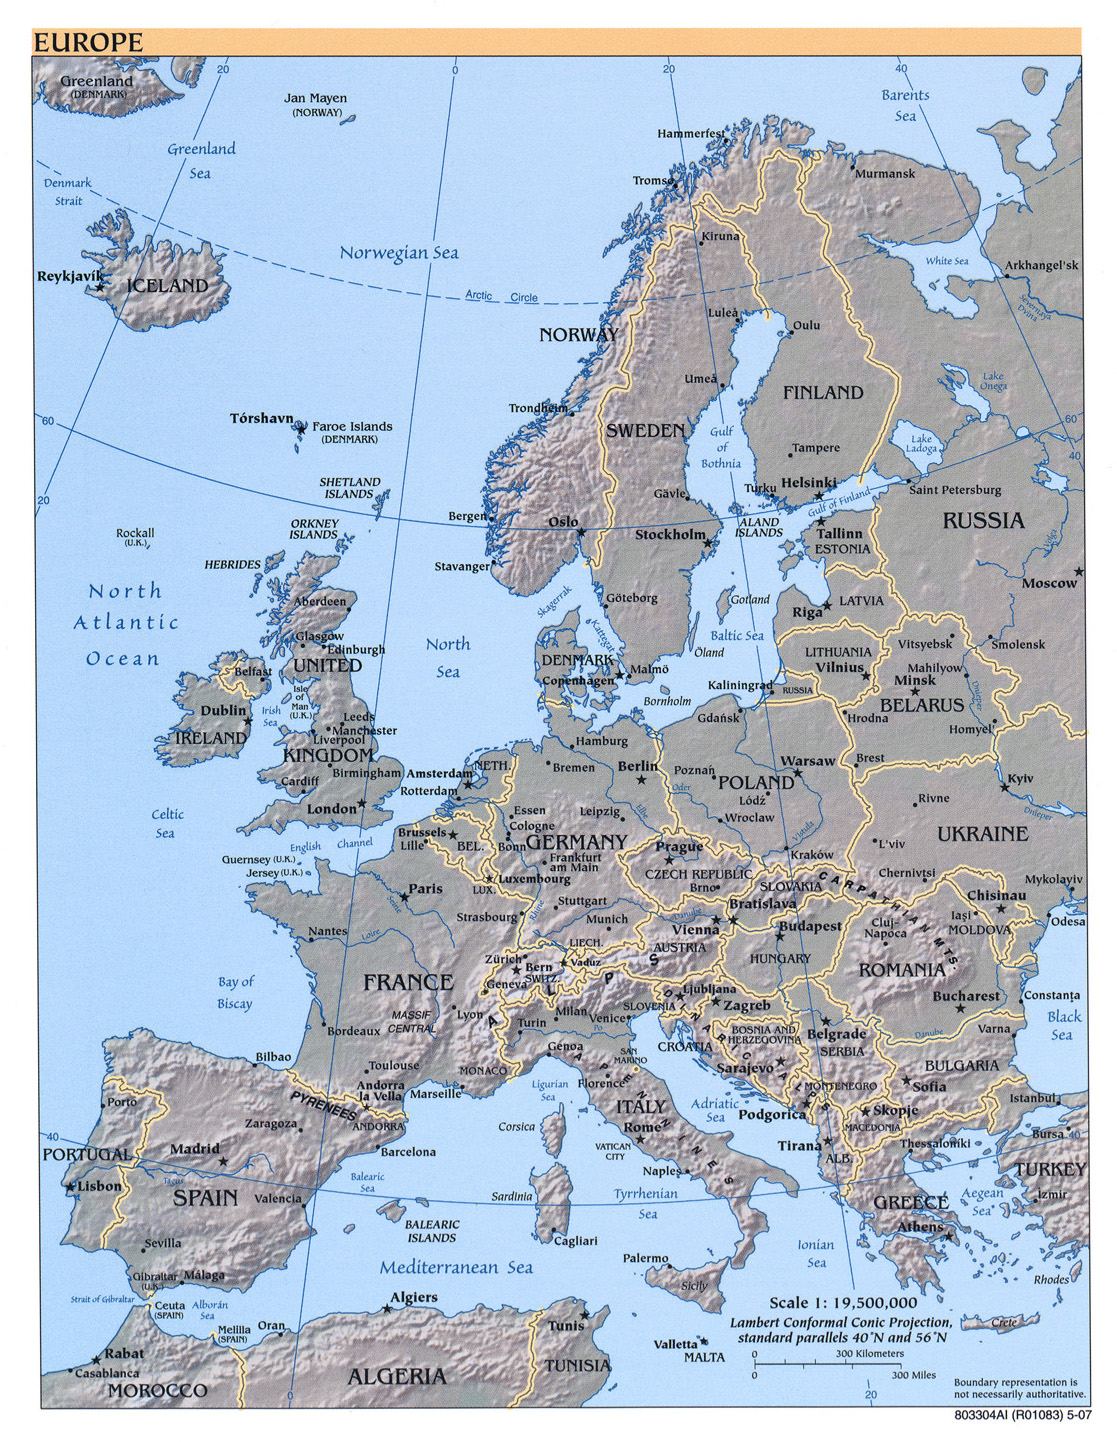 Europe physical map 2007